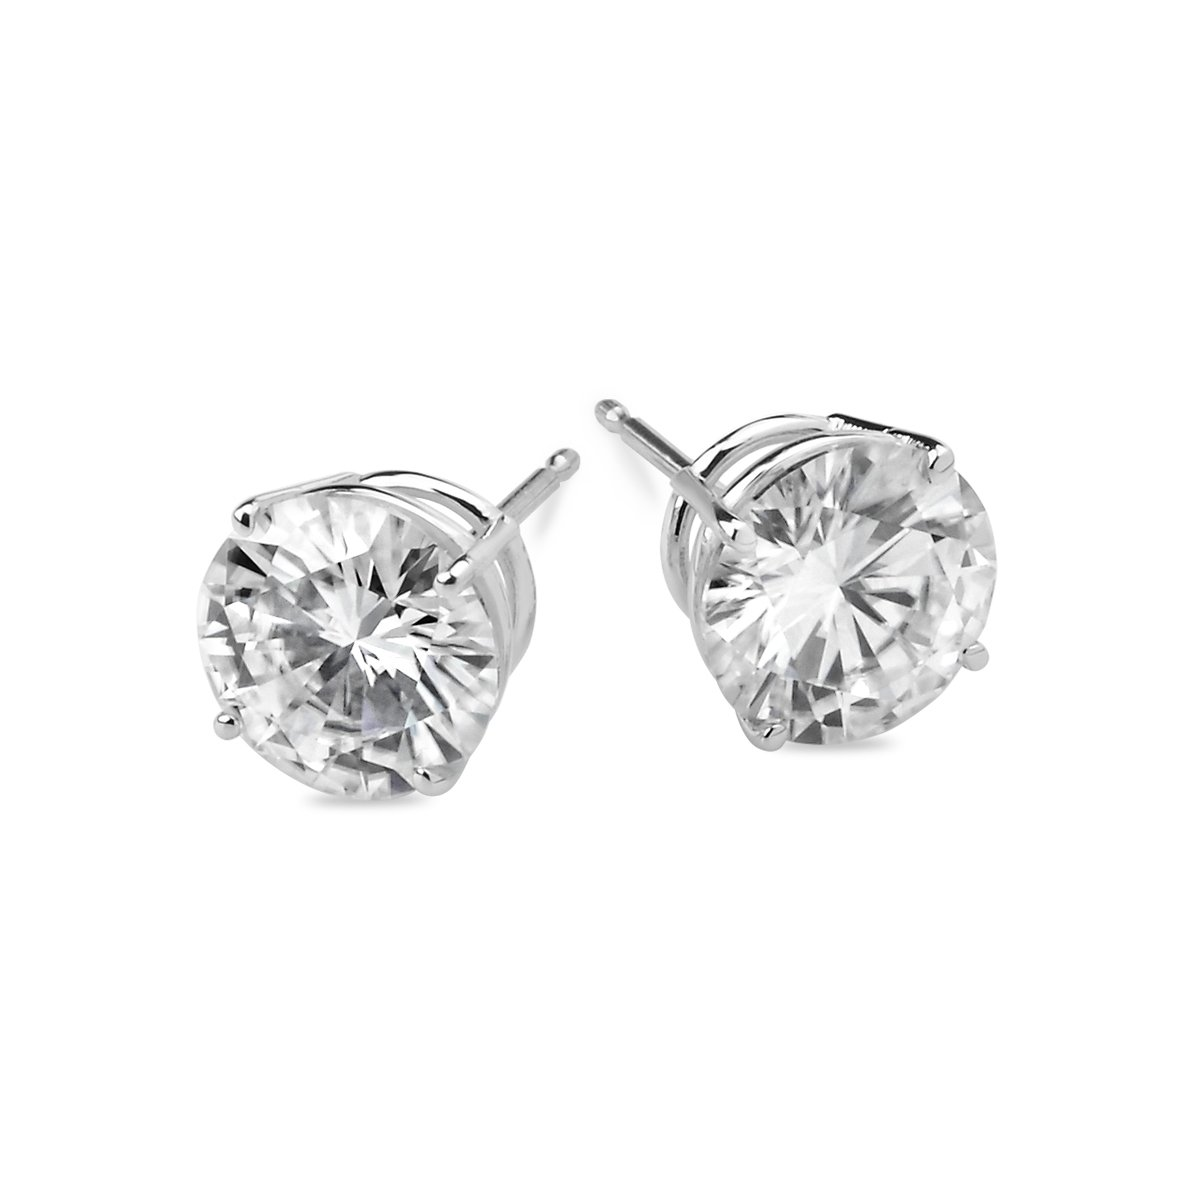 Forever Classic 6.0mm Round Cut Moissanite Stud Earrings, 1.60cttw DEW By Charles & Colvard by Charles & Colvard